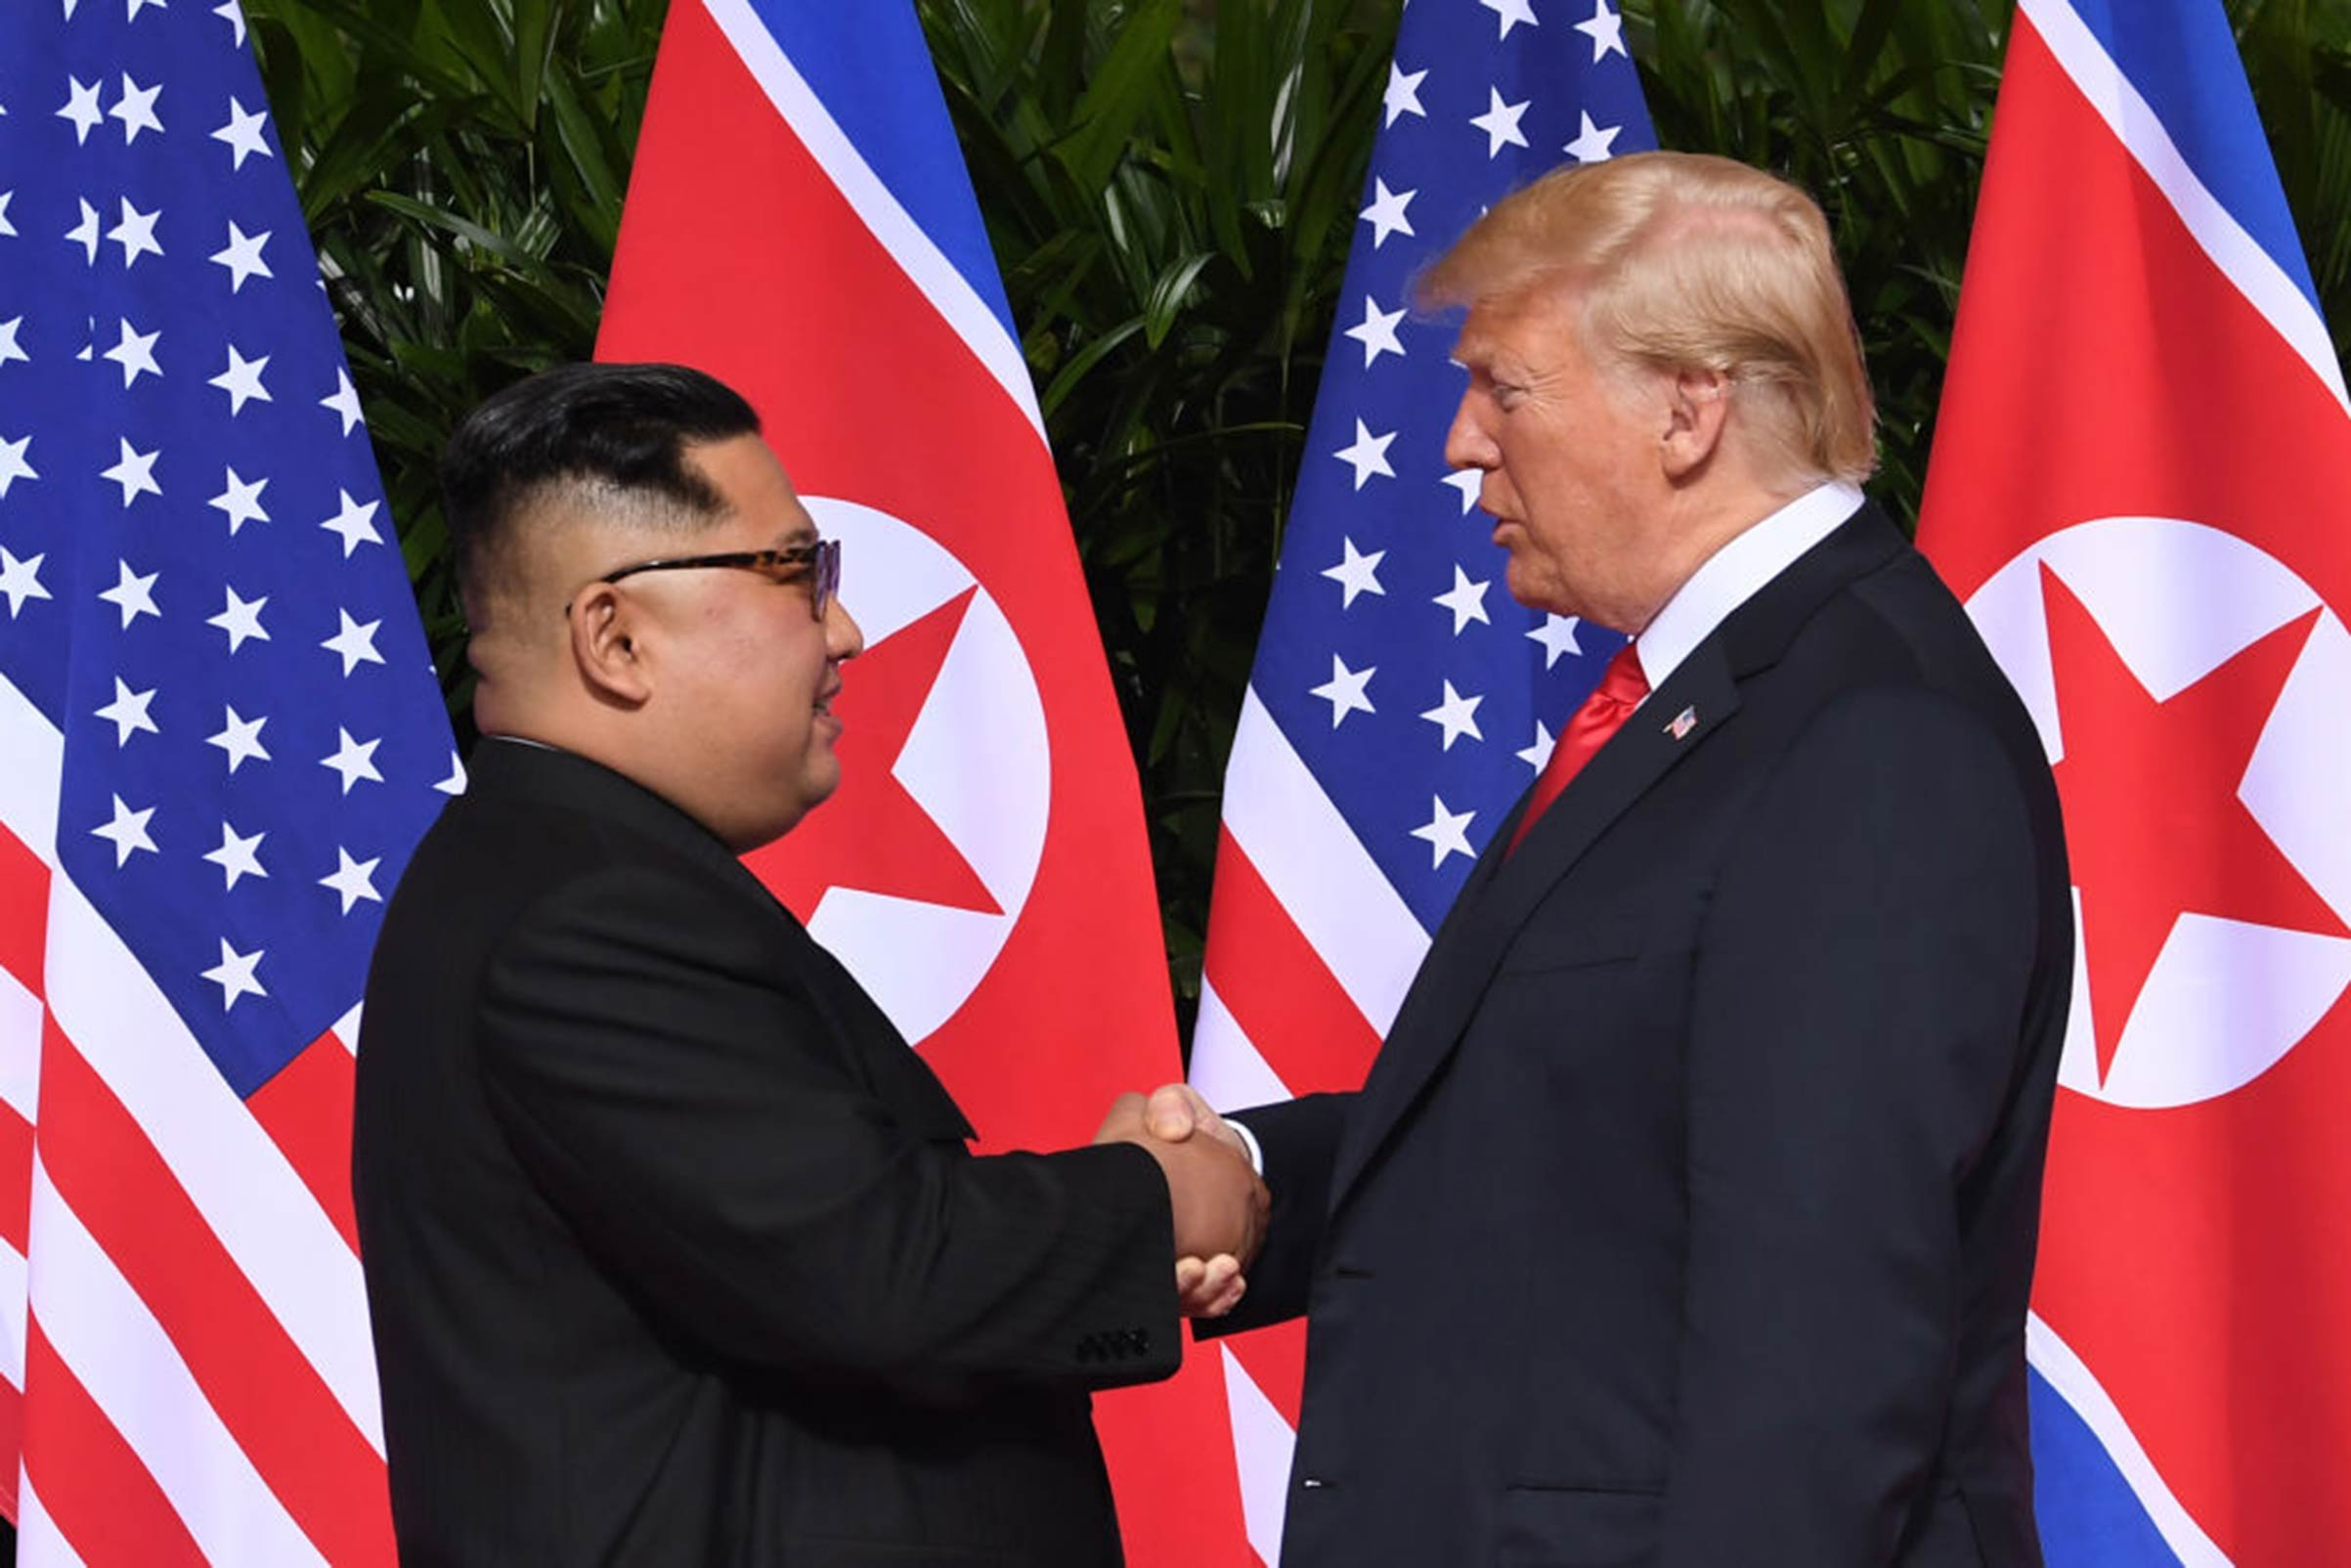 The President of the United States Donald Trump and North Korea's leader Kim Jong Un shake hands following a signing ceremony during their historic U.S.-North Korea summit on Sentosa island in Singapore on June 12, 2018.